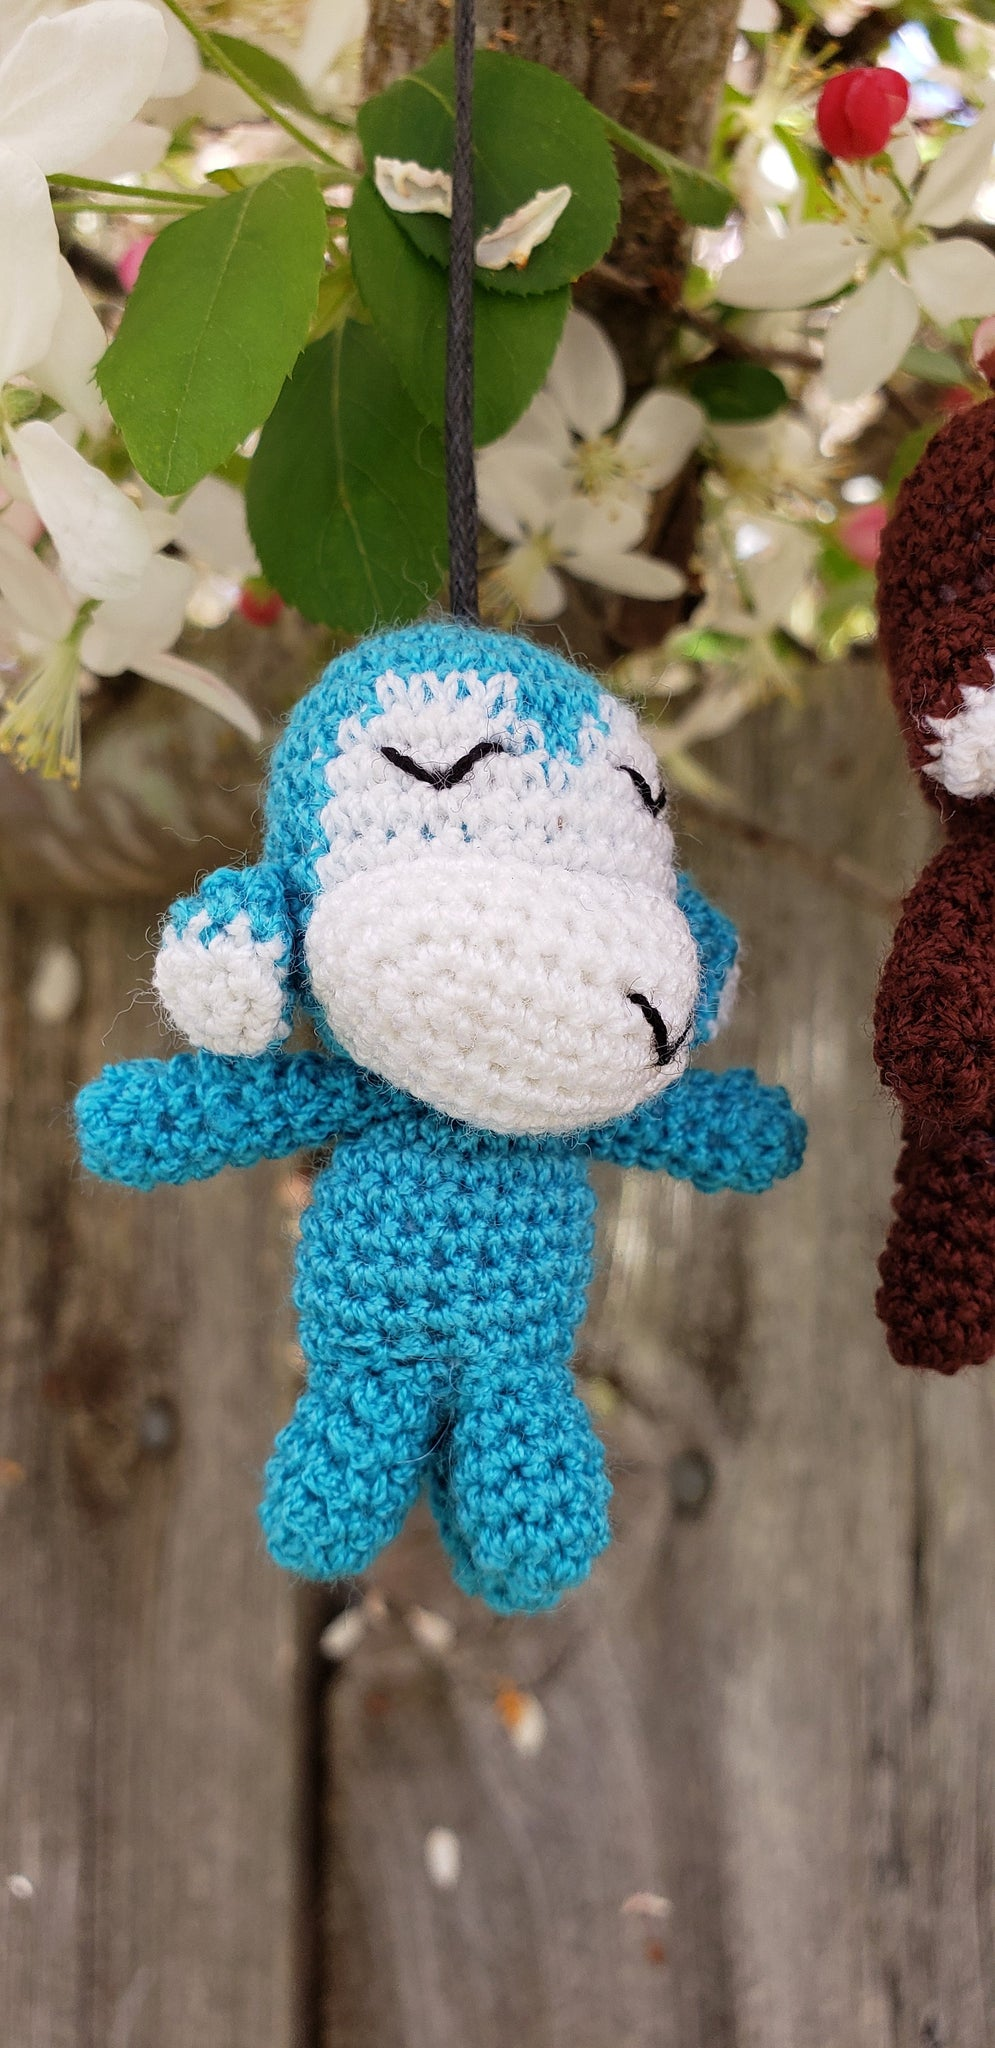 Monkey free shipping Finished product ,hand crochet  , high quality acrylic yarn. Strap ornament ,Key chain .Car mirror hanger.